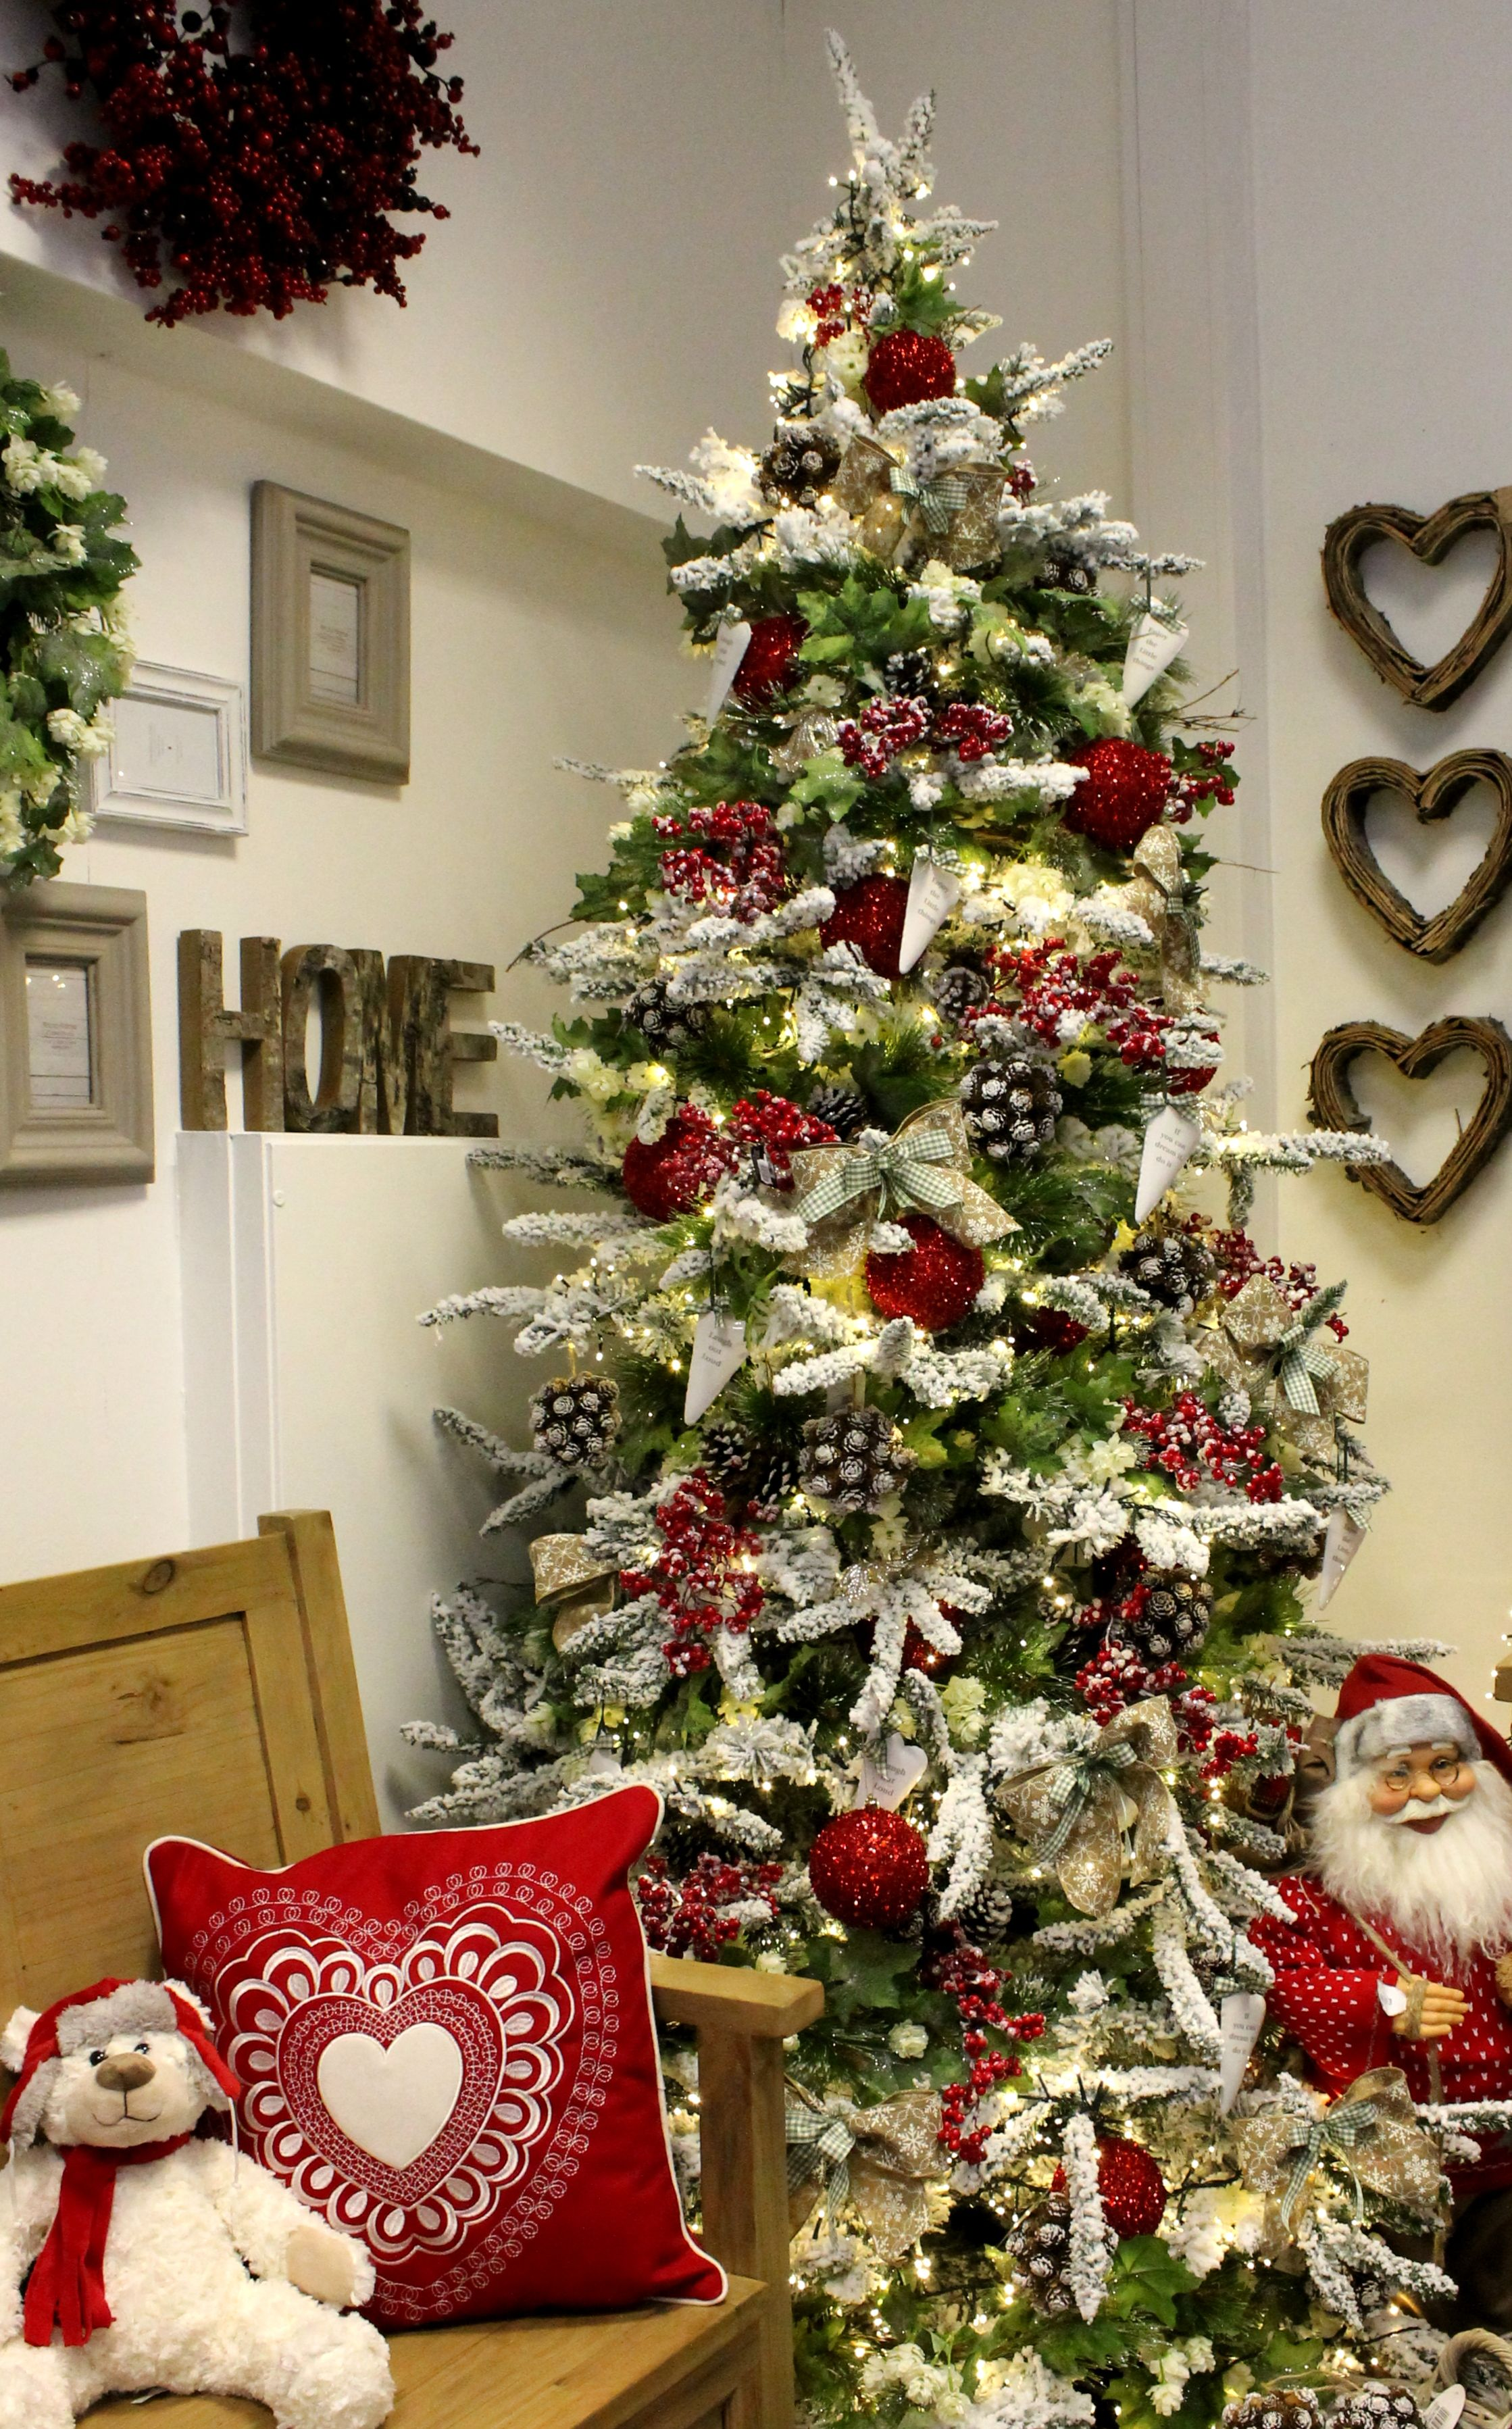 Pin By Ashley Moreno On Christmas Red And Gold Christmas Tree Christmas Tree Decorations Cool Christmas Trees